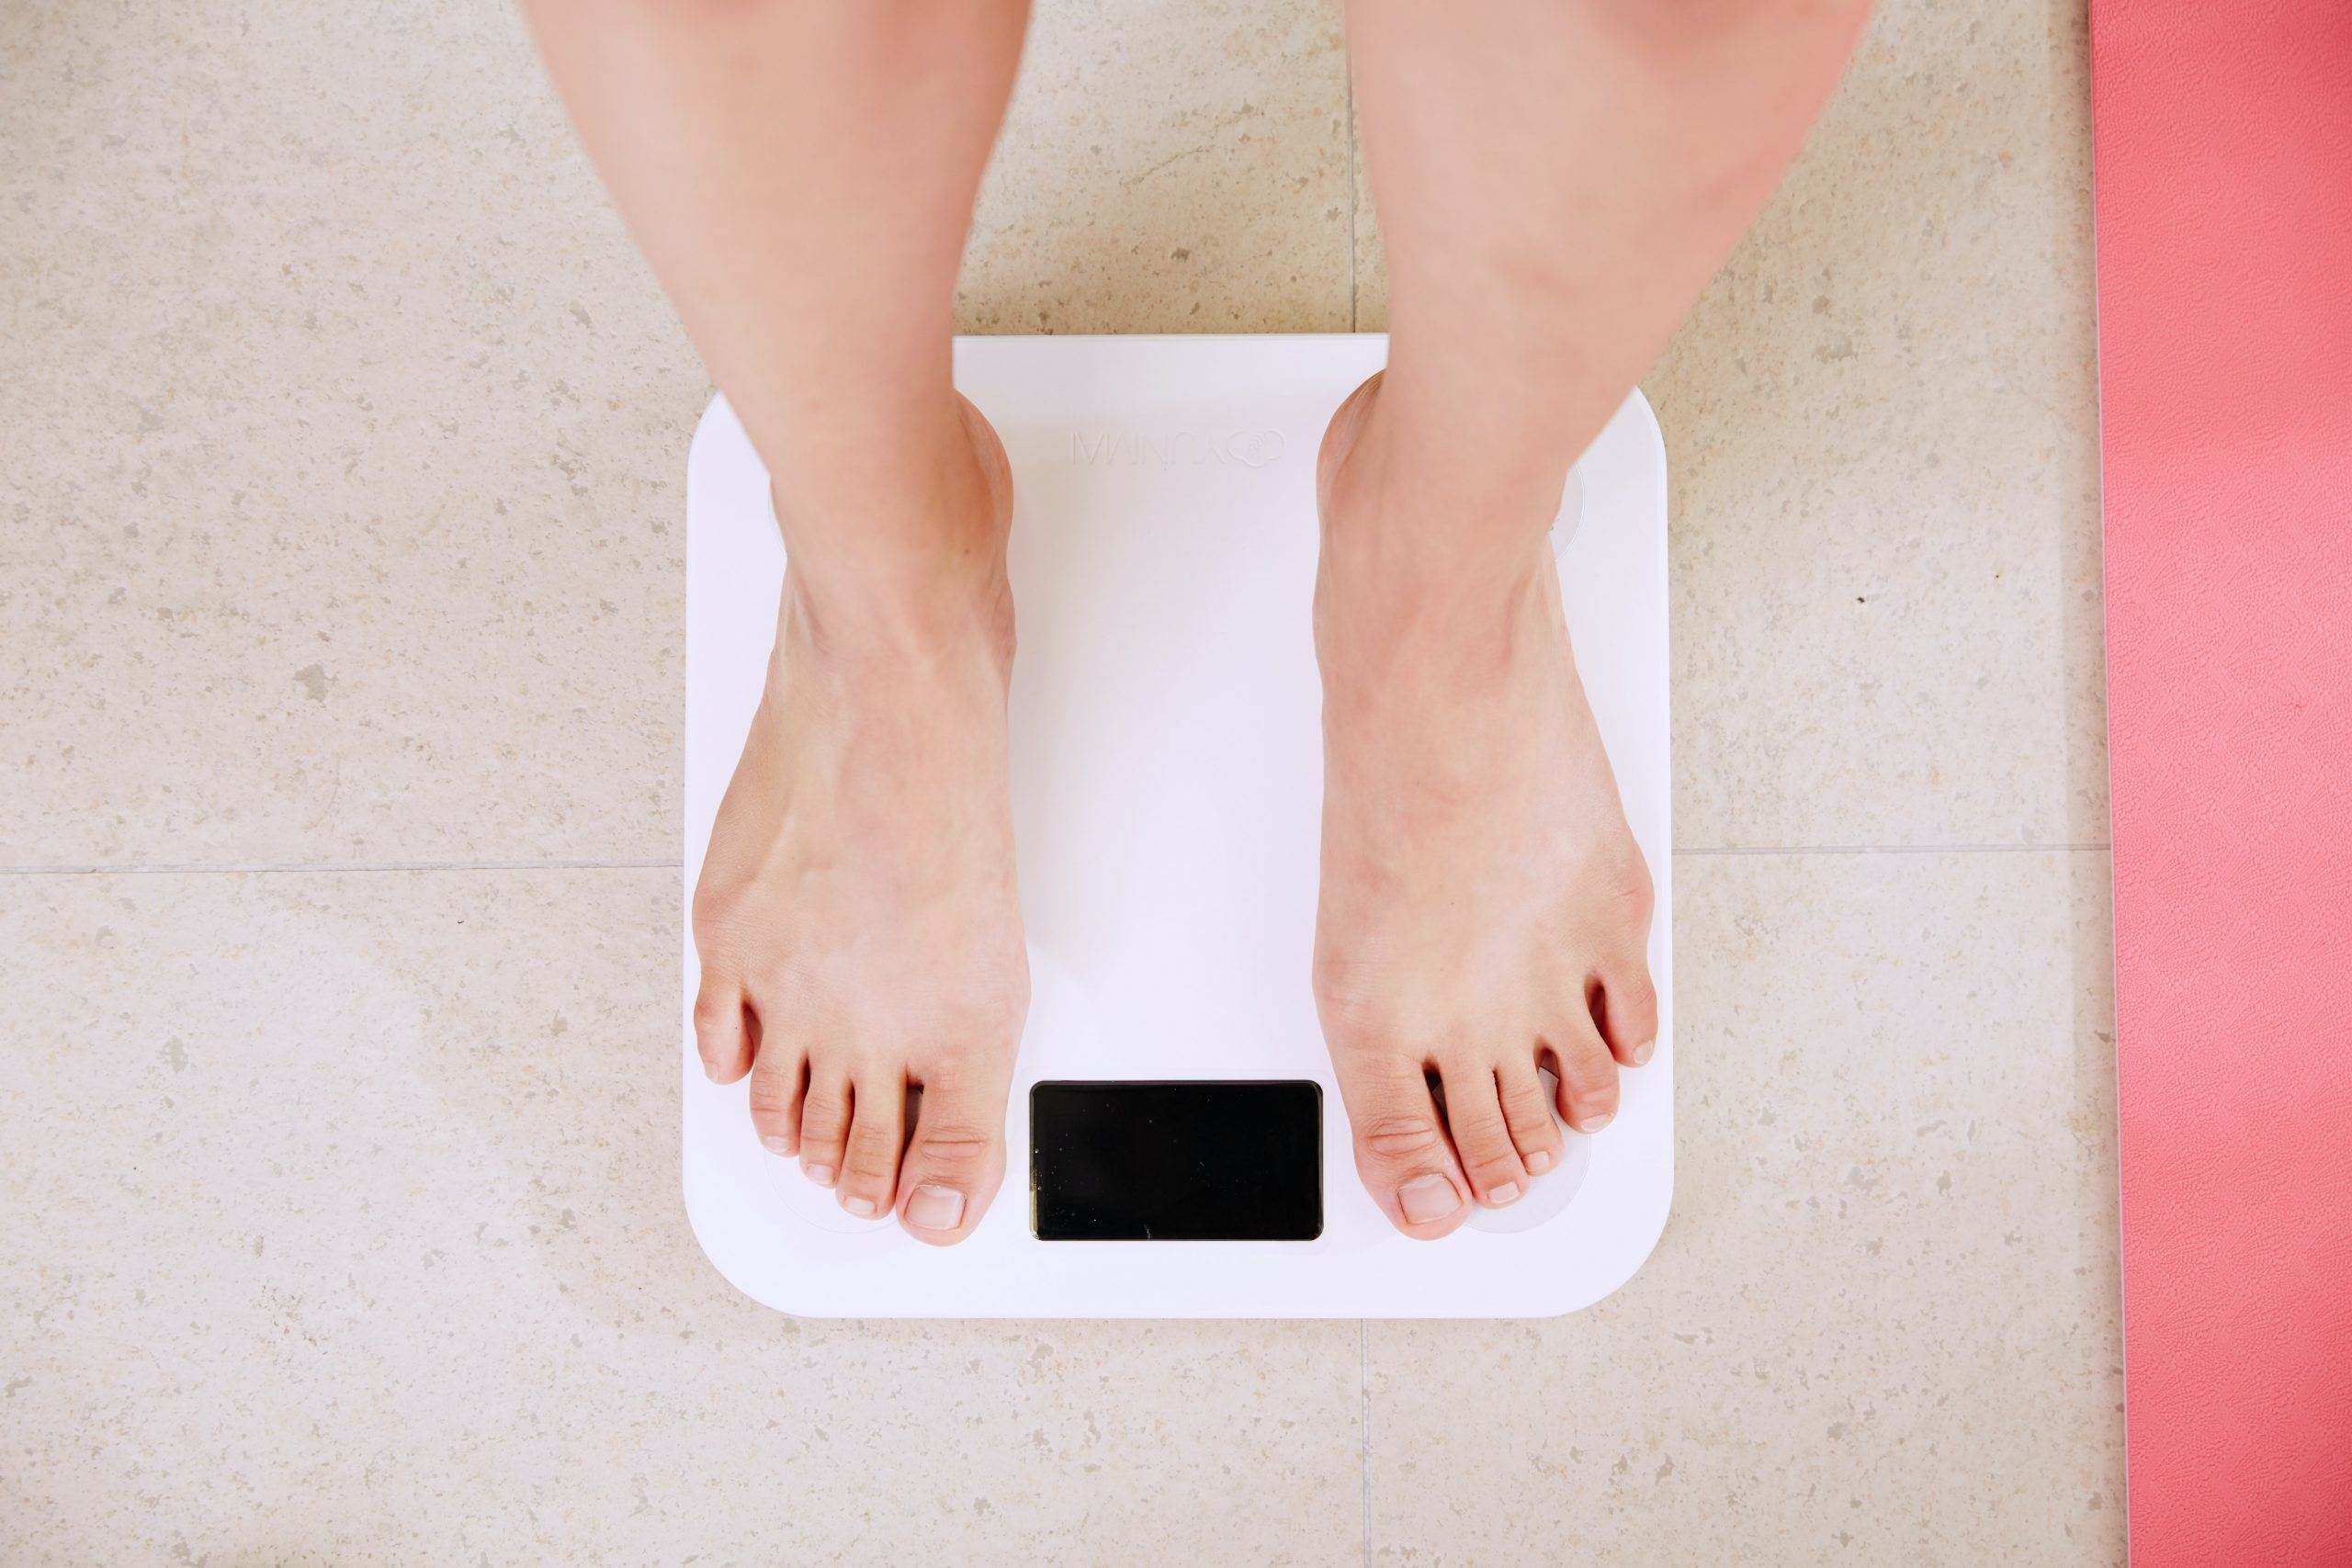 Image of man on a scale concerning about obesity